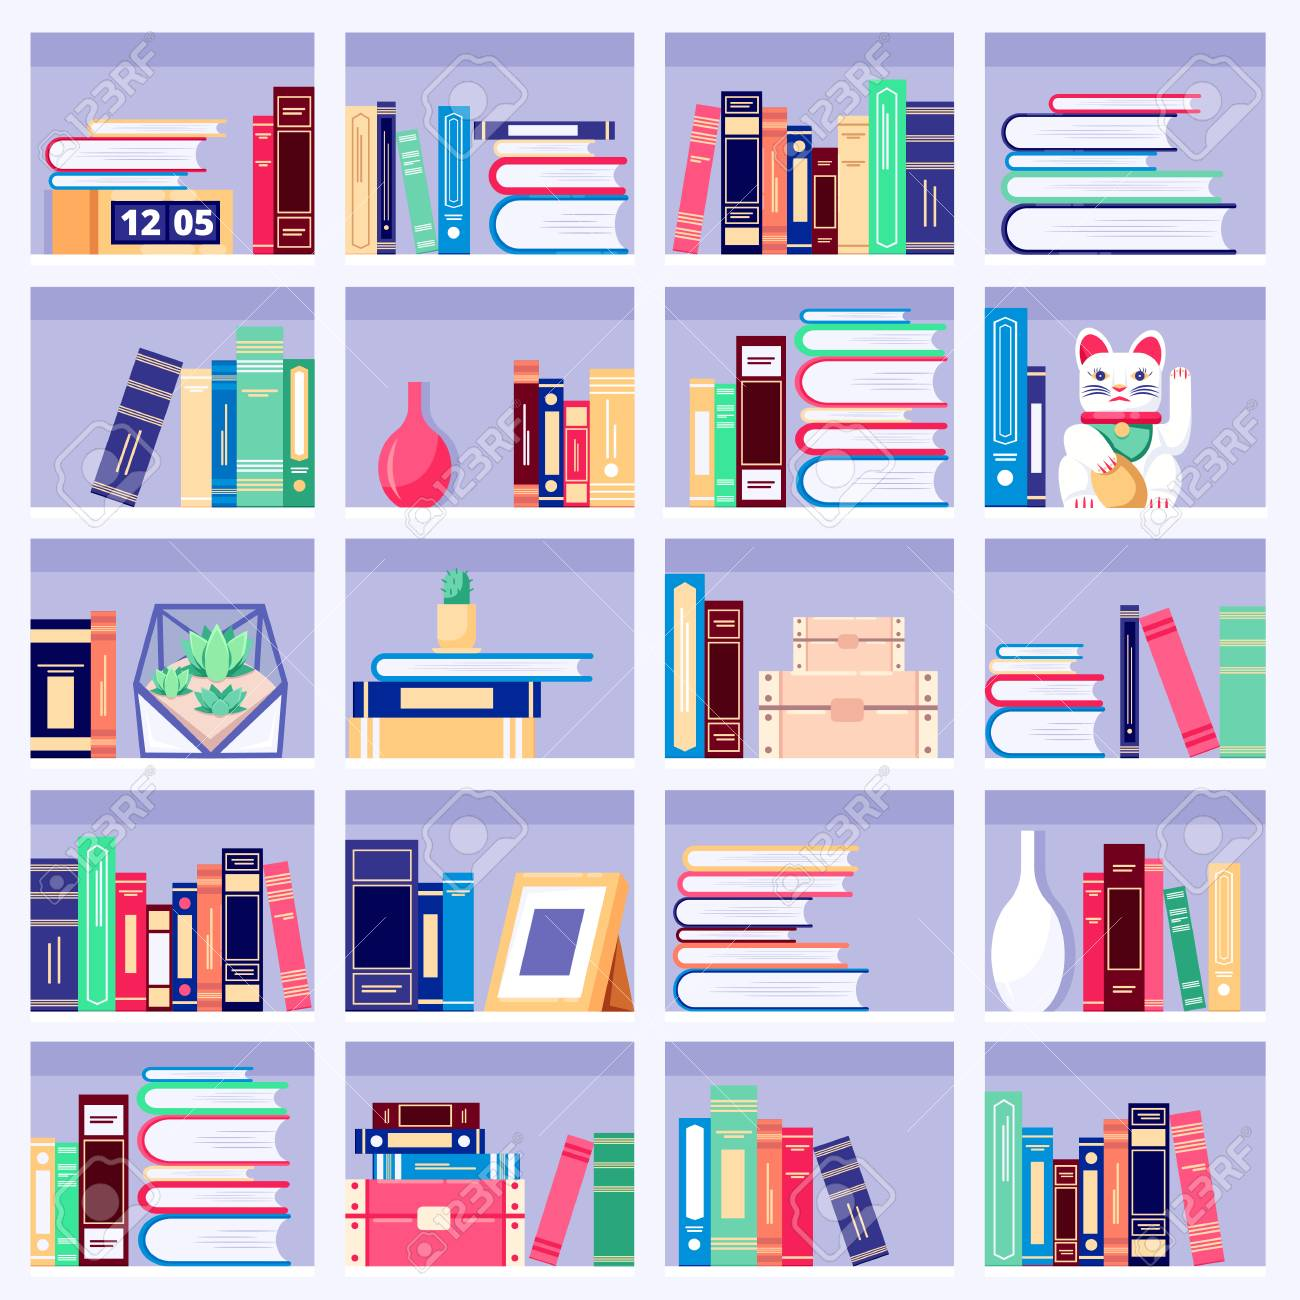 Bookcase Wth Colorful Books And Home Decor On Bookshelves Vector